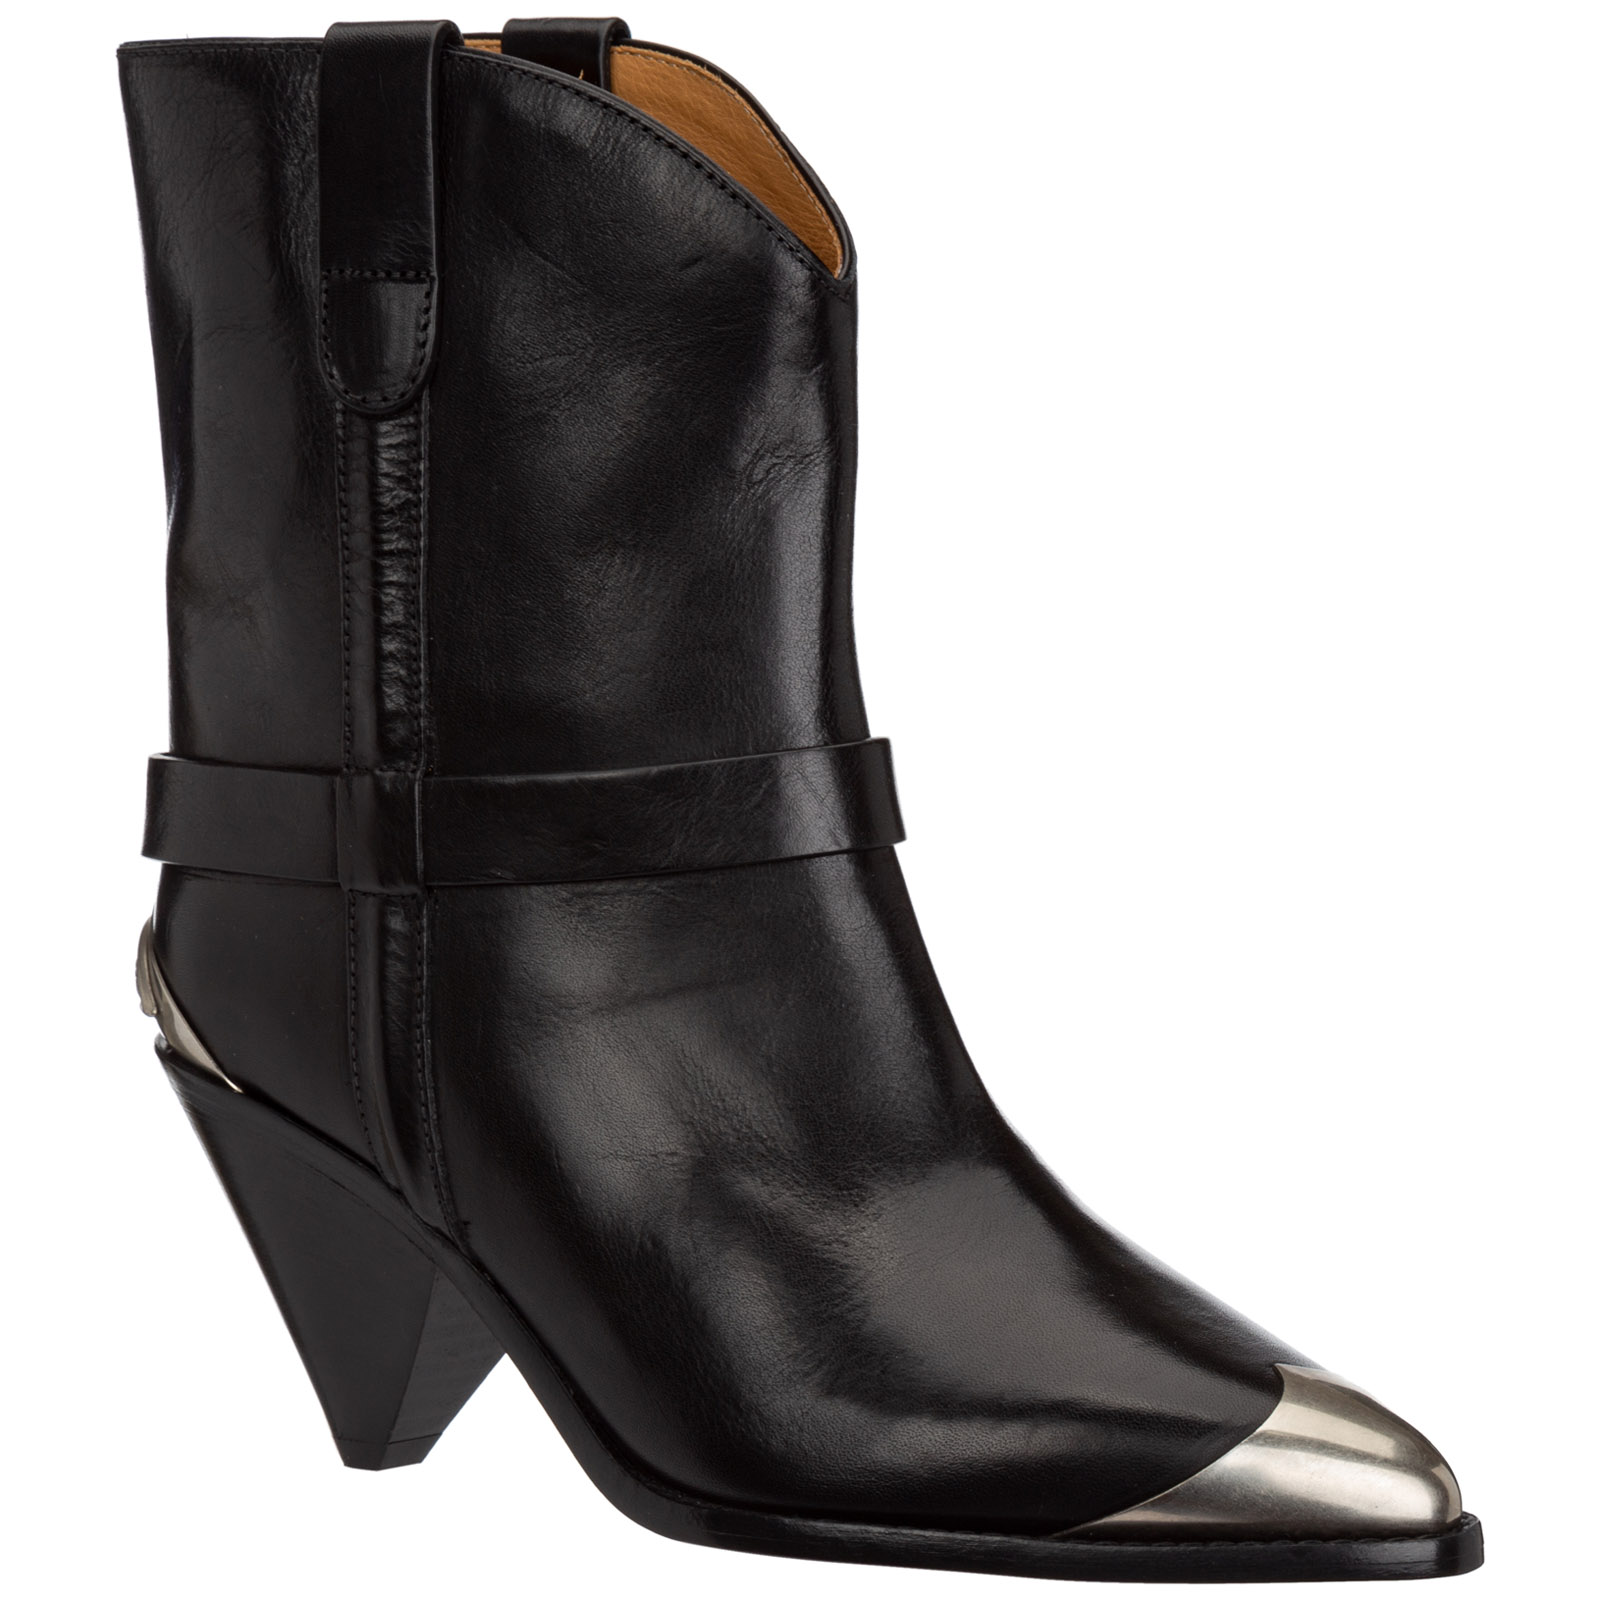 Women's leather heel'ankle boots booties limza